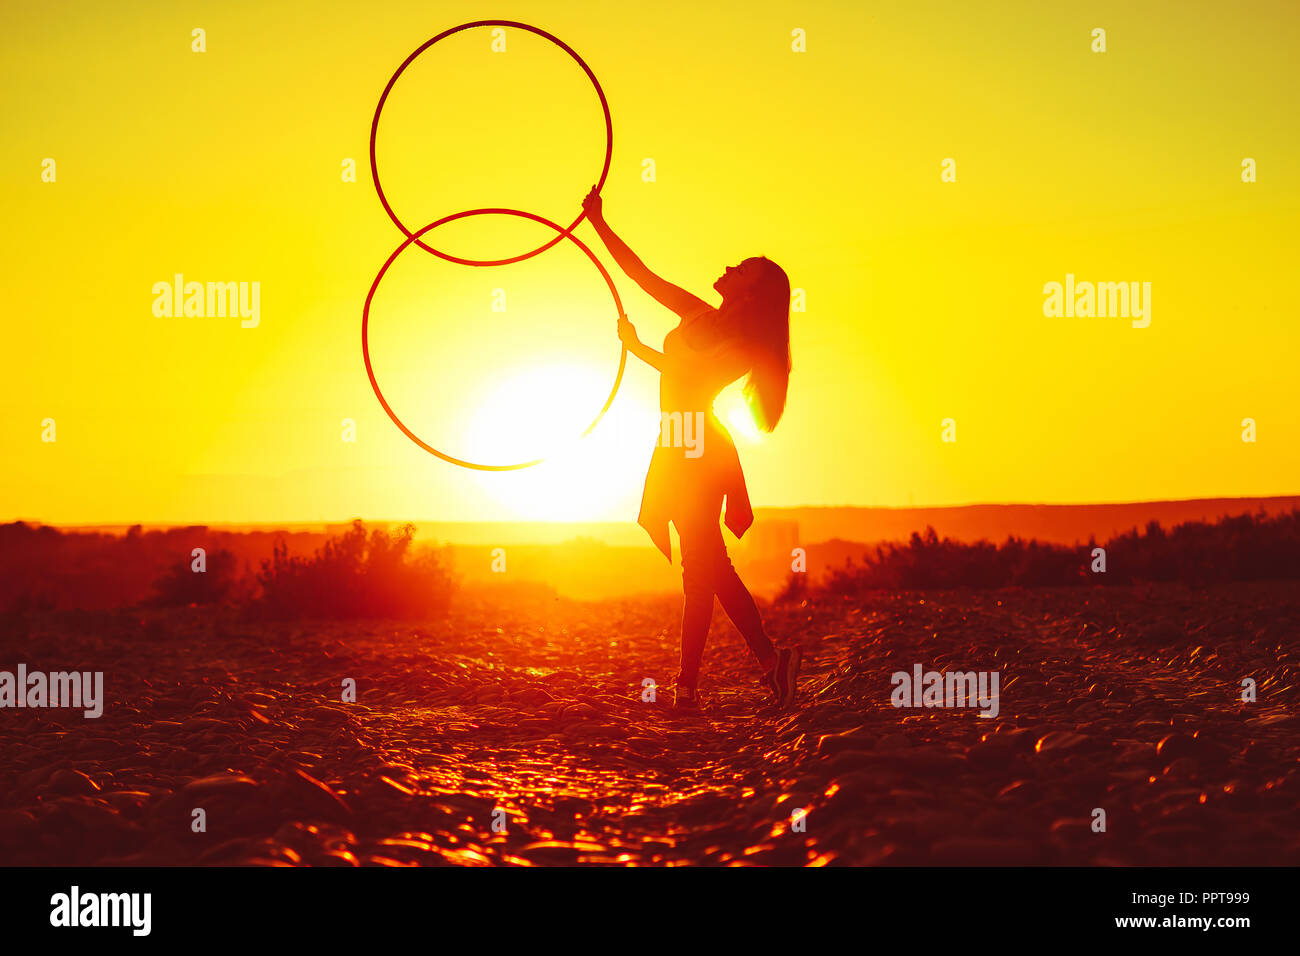 woman rotates hula hoop on nature background - Stock Image